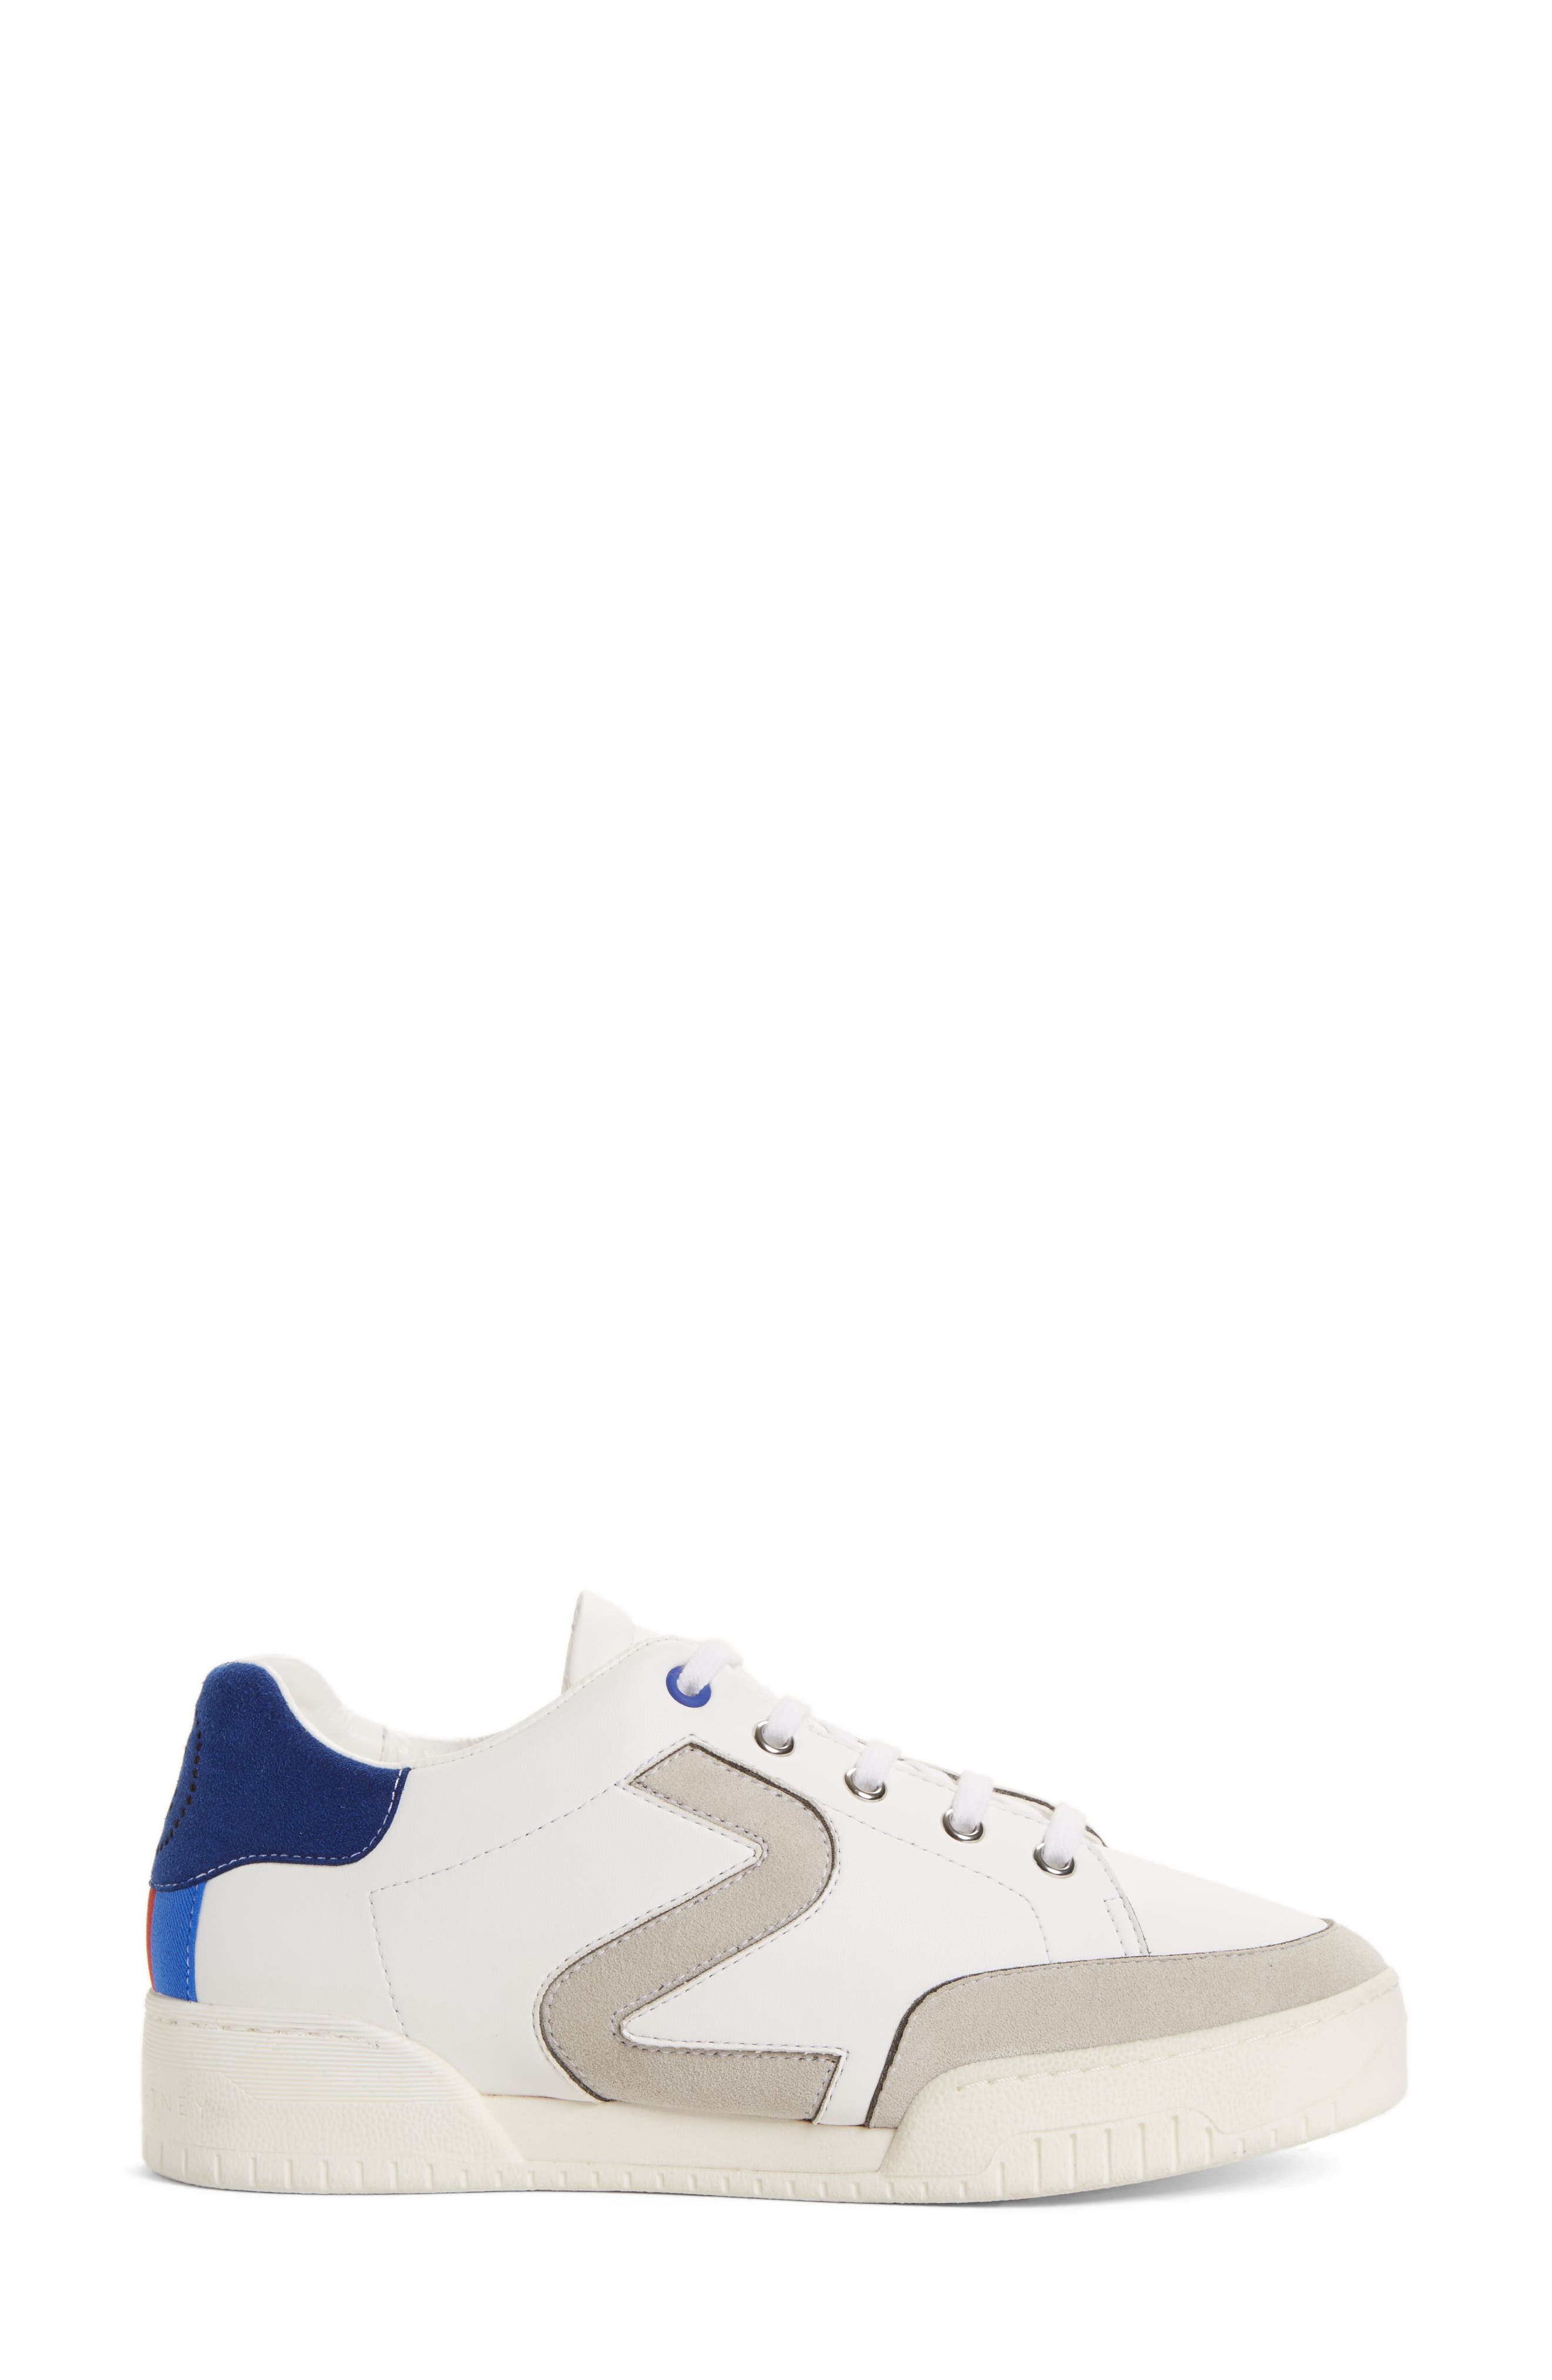 Alternate Image 3  - Stella McCartney Logo Sneaker (Women)